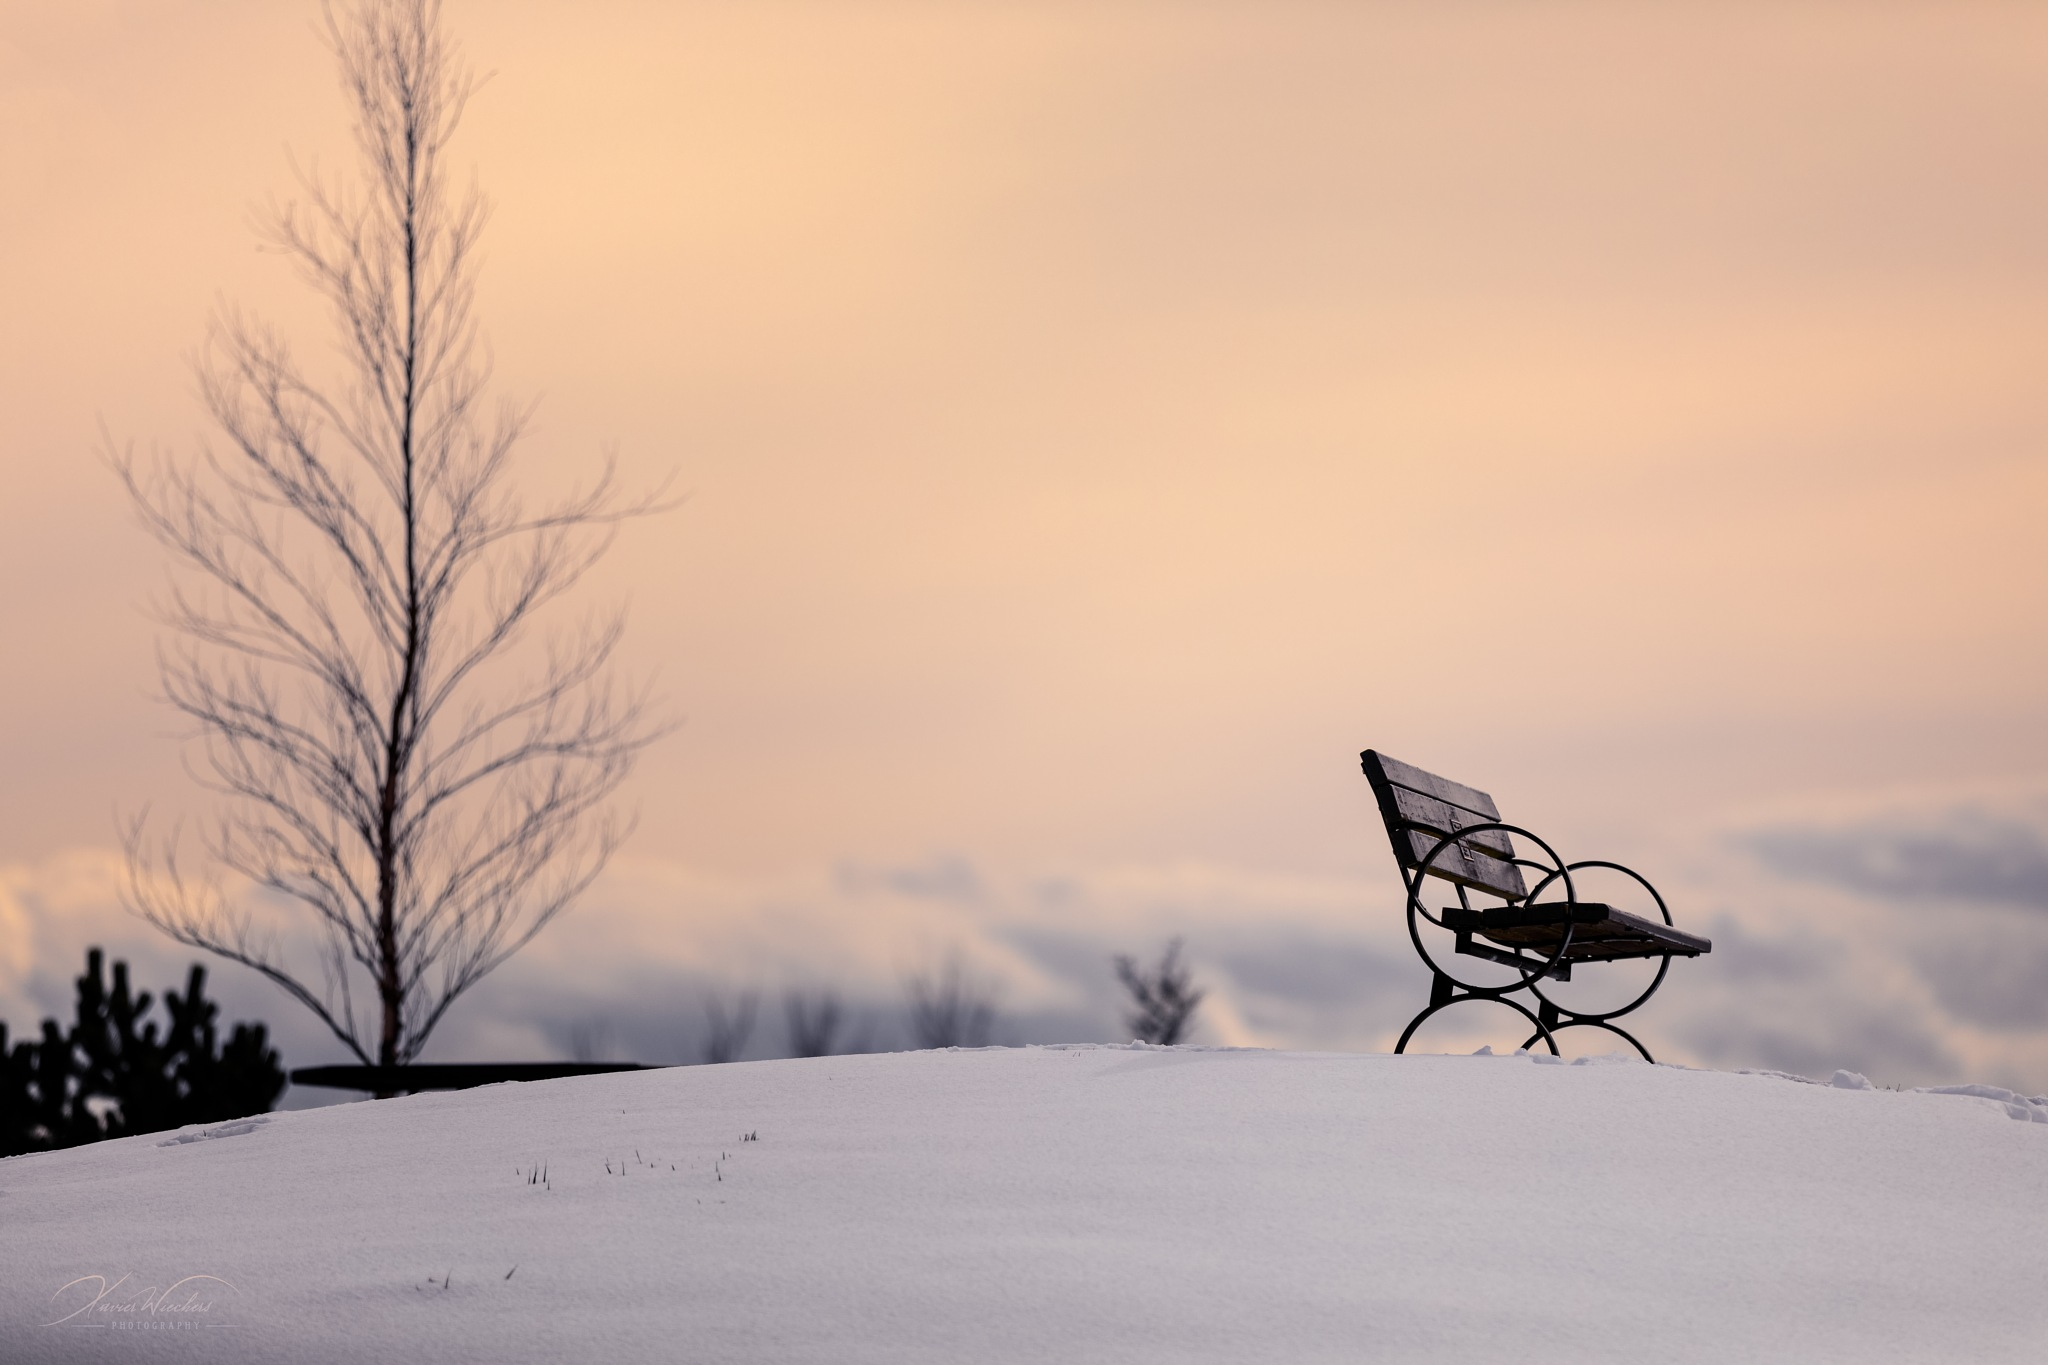 Park Bench on Snow Mound by xwiechers